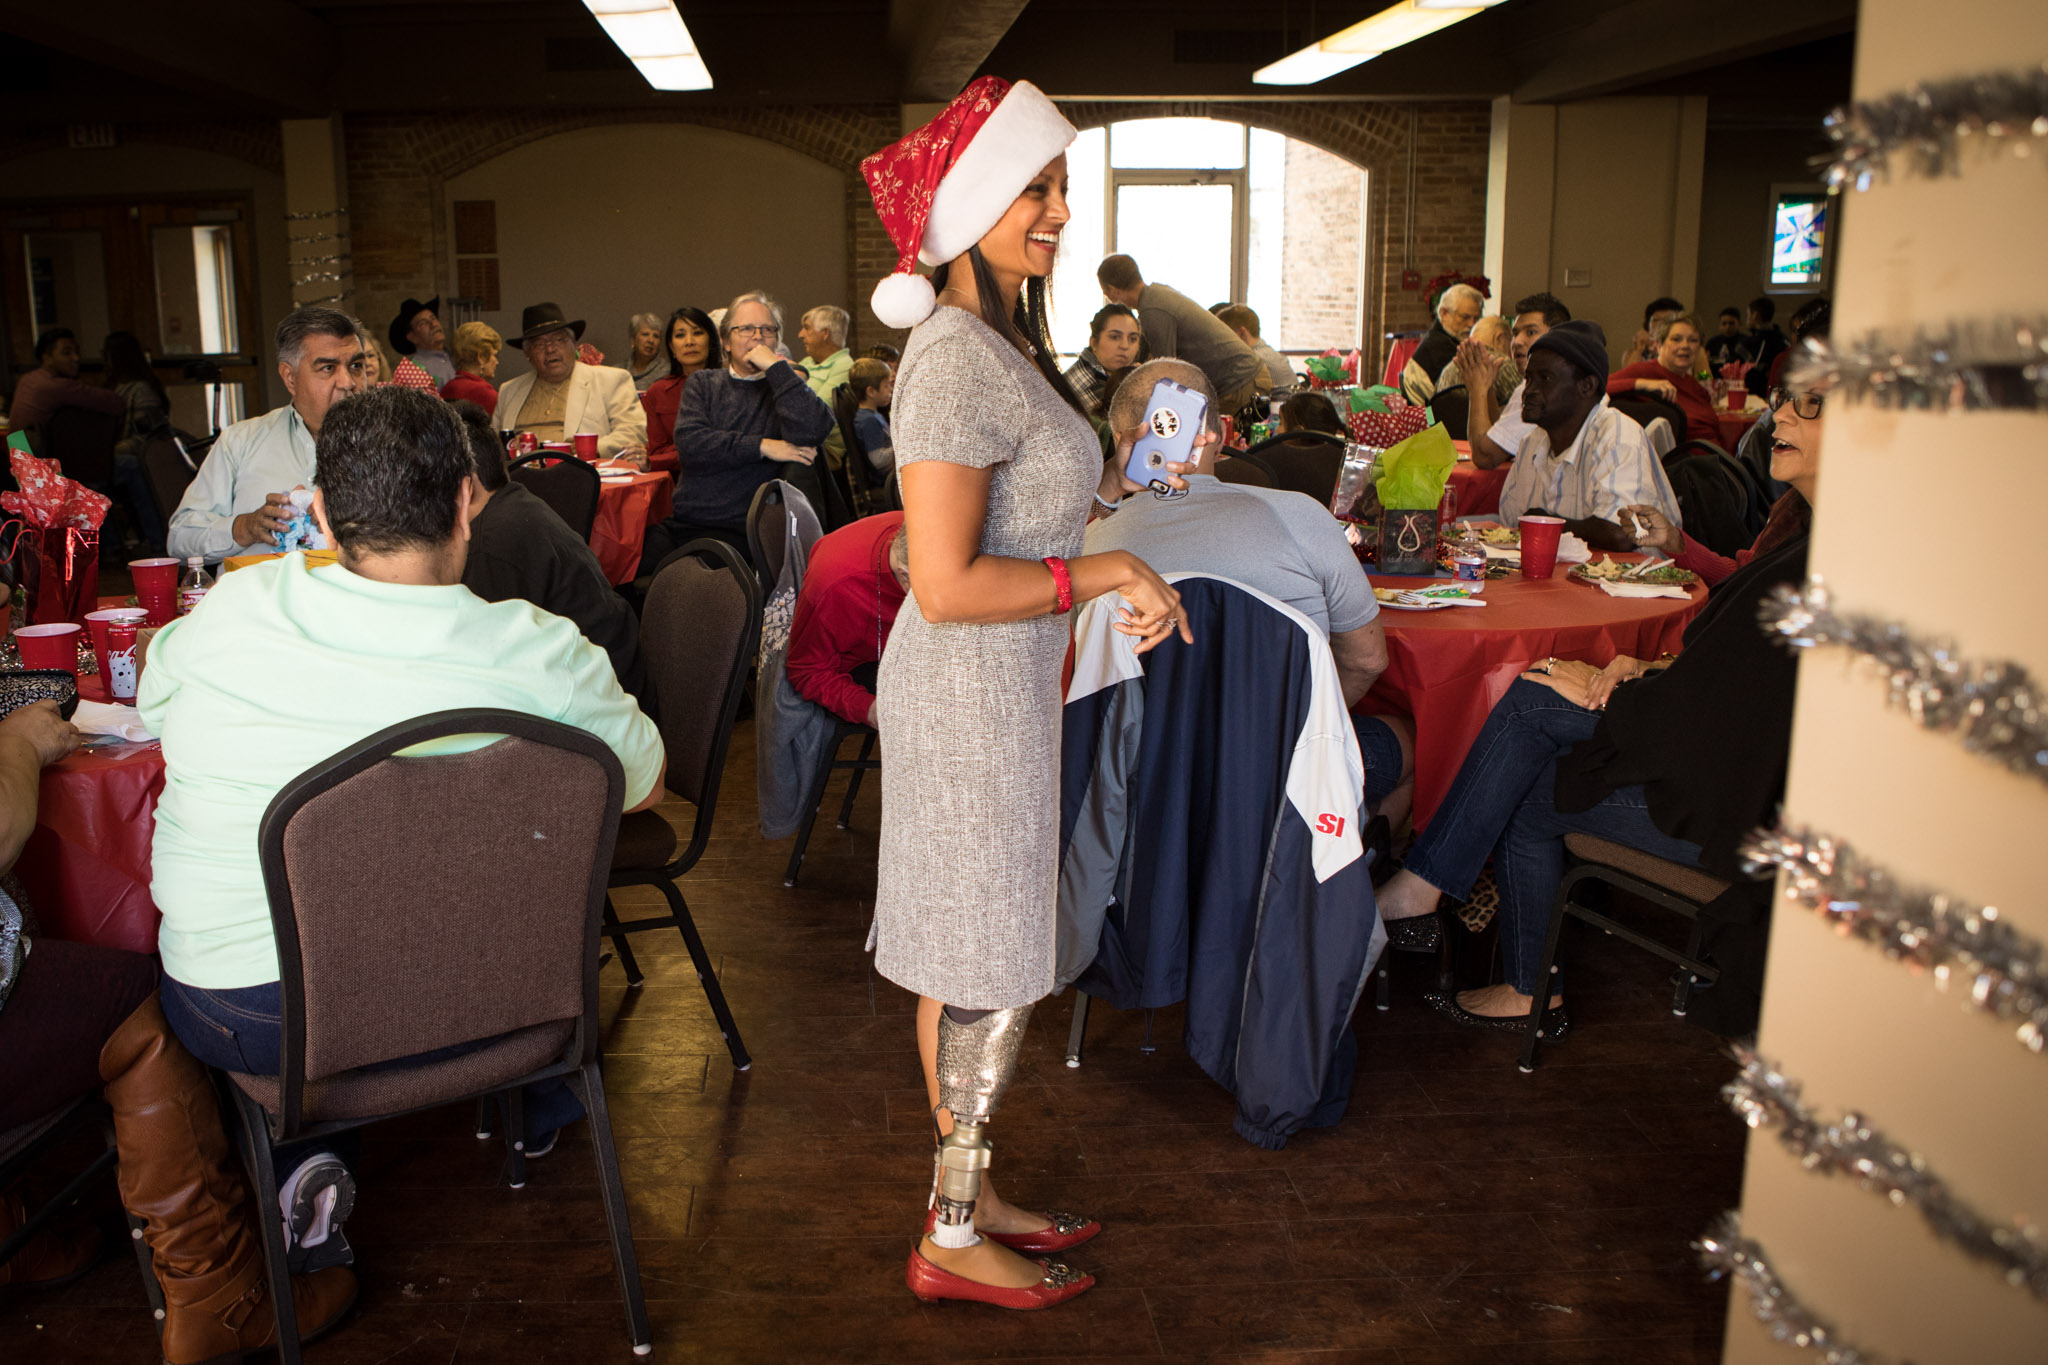 San Antonio Amputee Foundation Founder and Executive Director Mona Patel leads the gift exchange at the San Antonio Amputee Foundation Annual Holiday Luncheon.